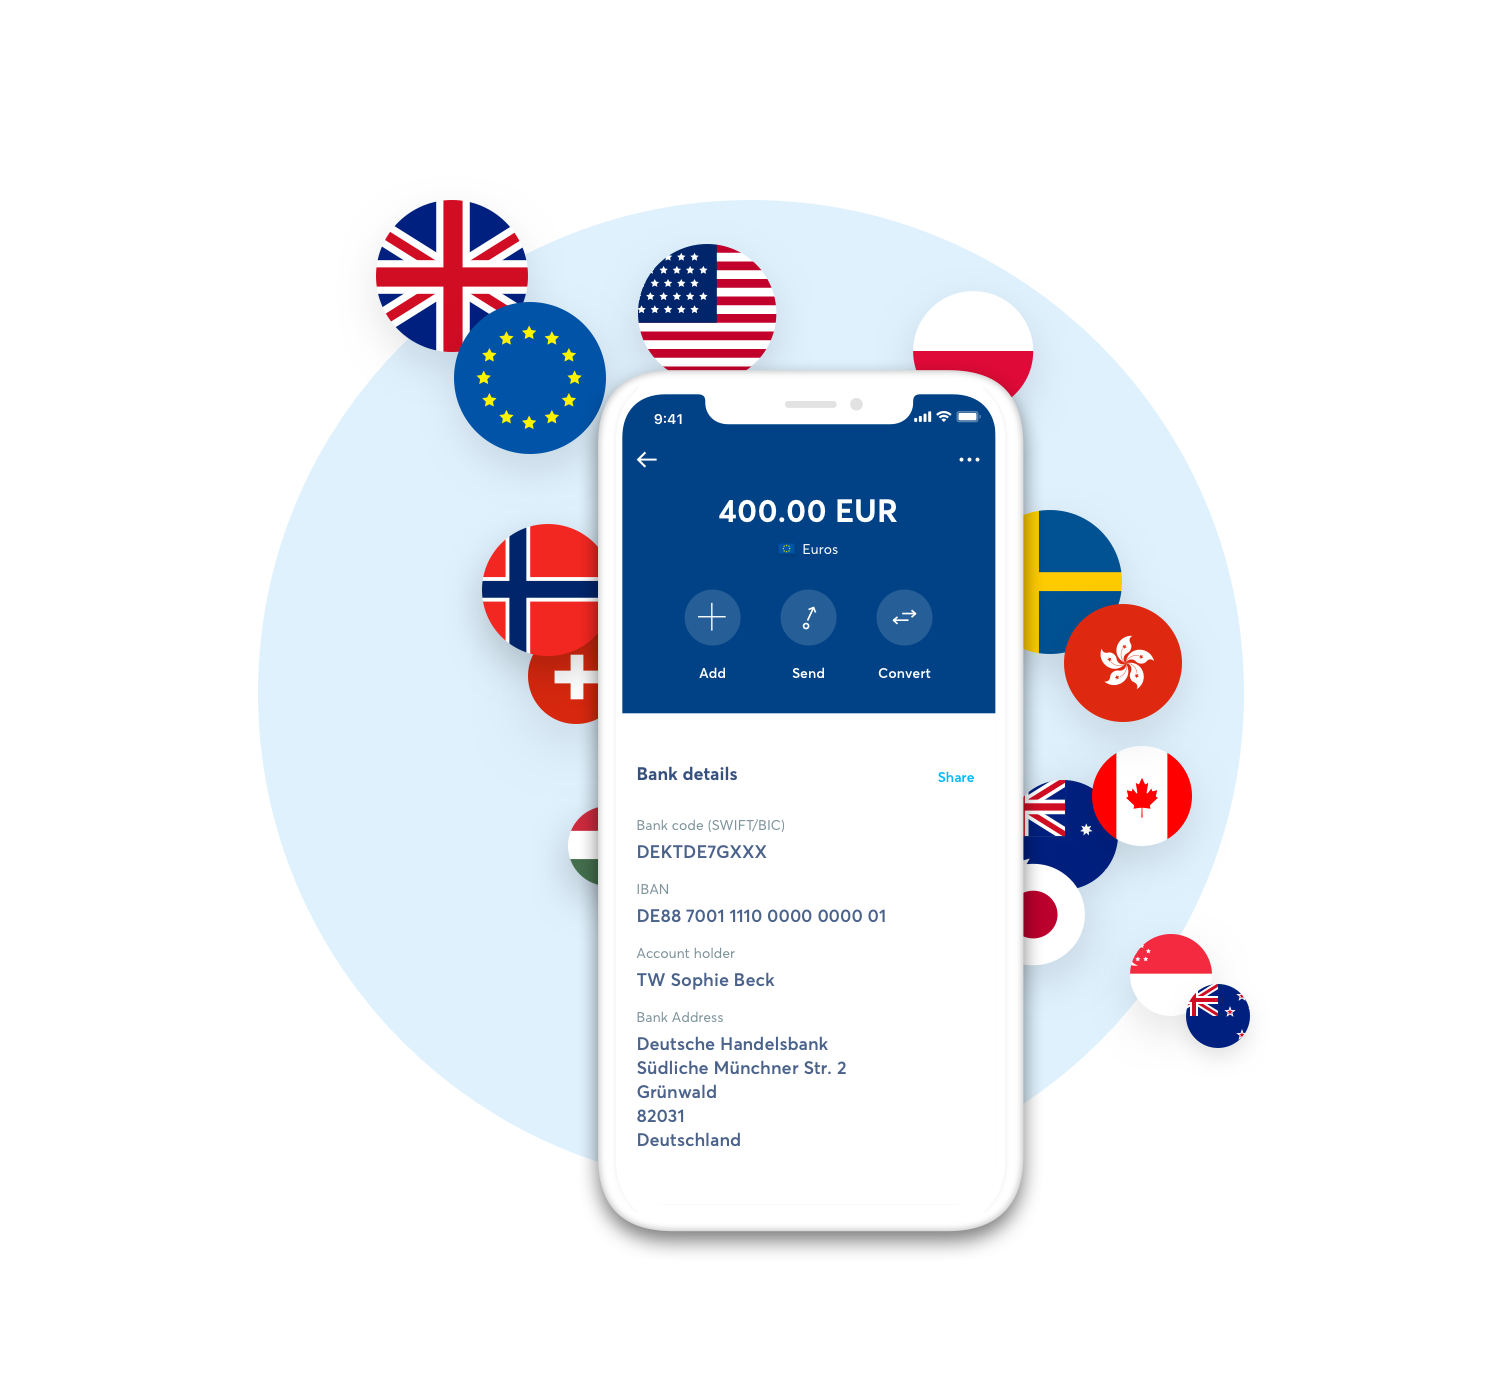 Why should you open a DKK account in the US?